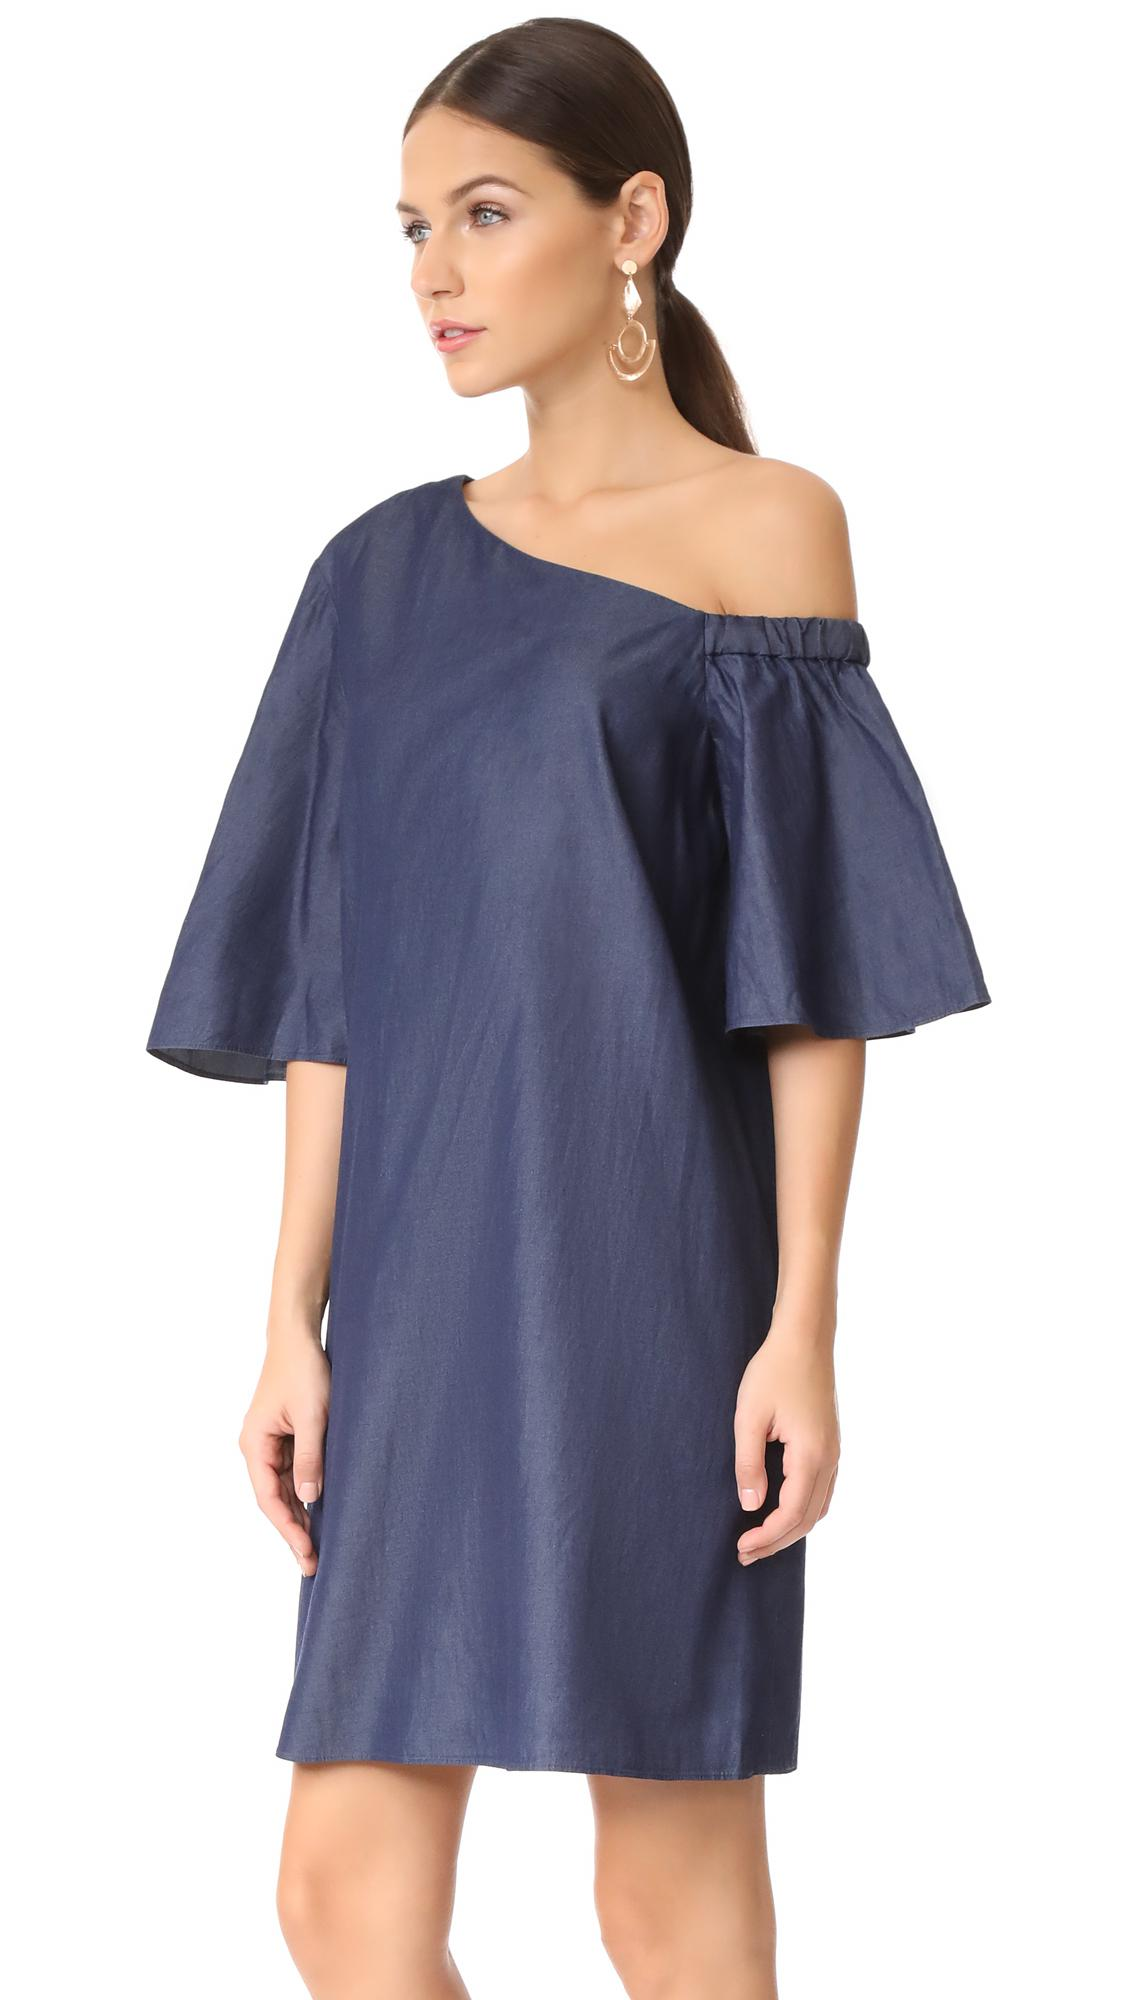 f673858023 Lyst - Tibi One Shoulder Bell Sleeve Dress in Blue